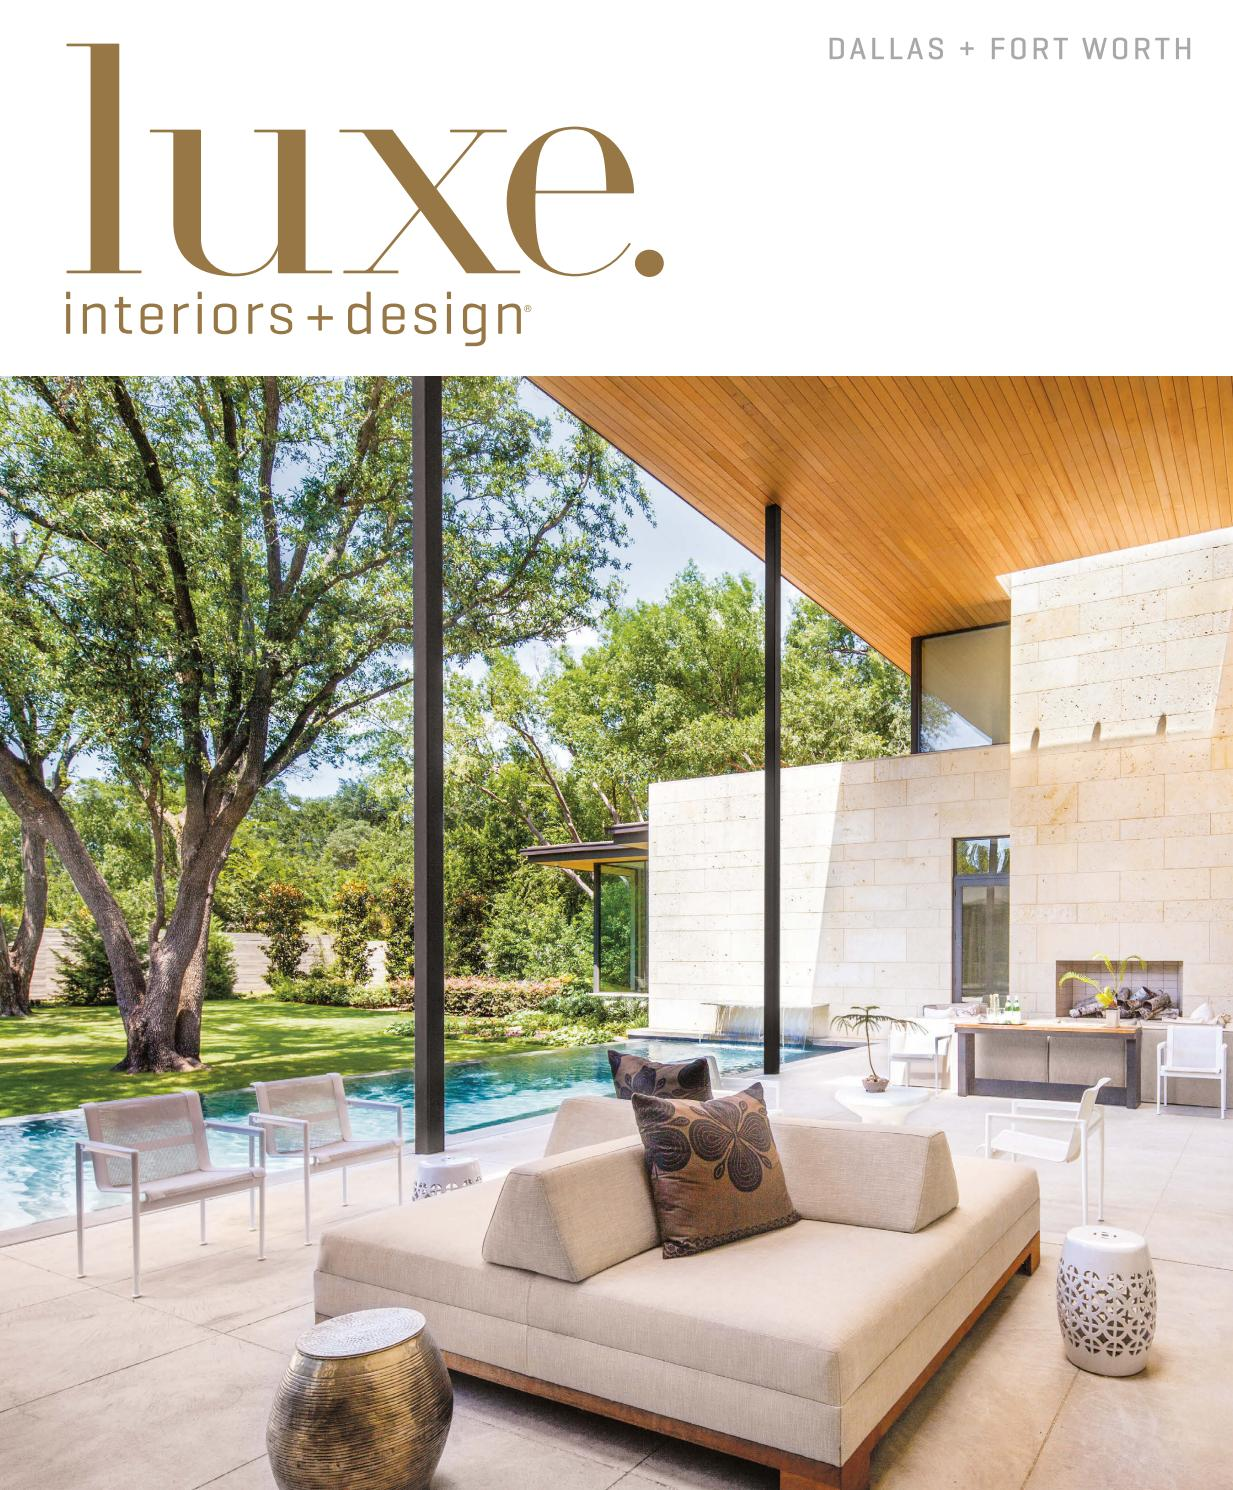 luxe magazine dallas sandow issuu page miles redd kidney accent table solid oak tables formal dining room martin furniture desk farmhouse style coffee jcpenney end white wicker